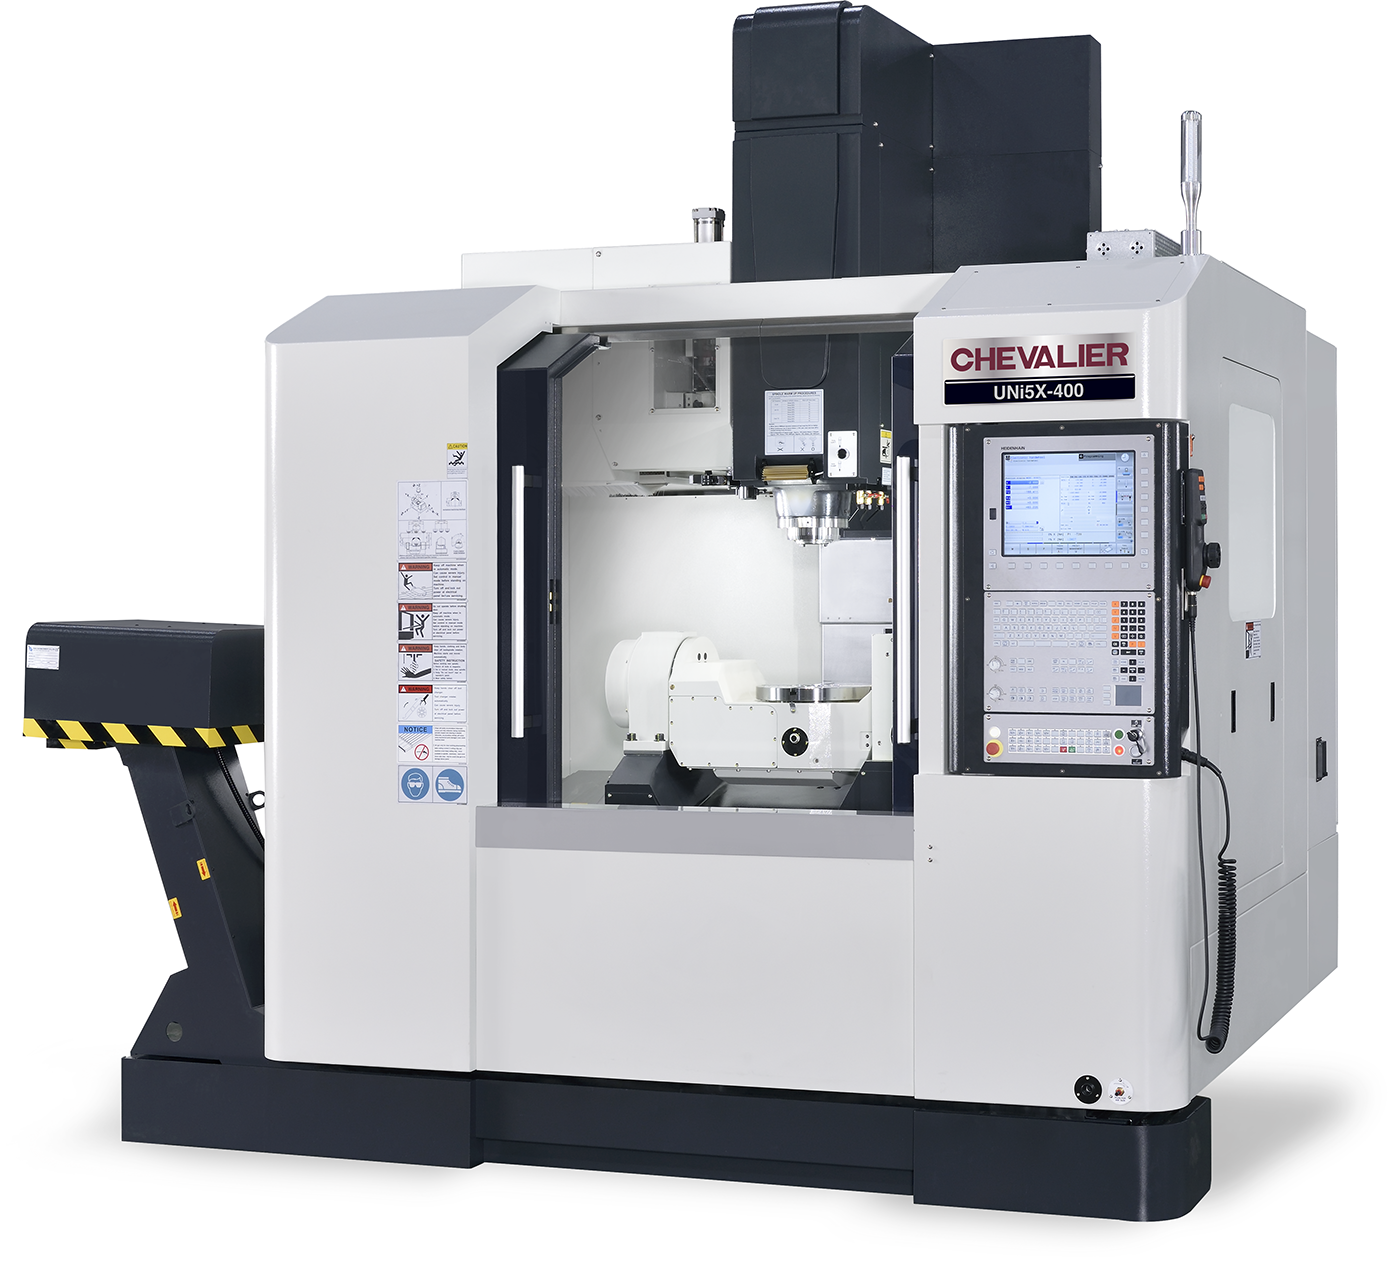 UNi5X-400 5-Axis Vertical Machining Center